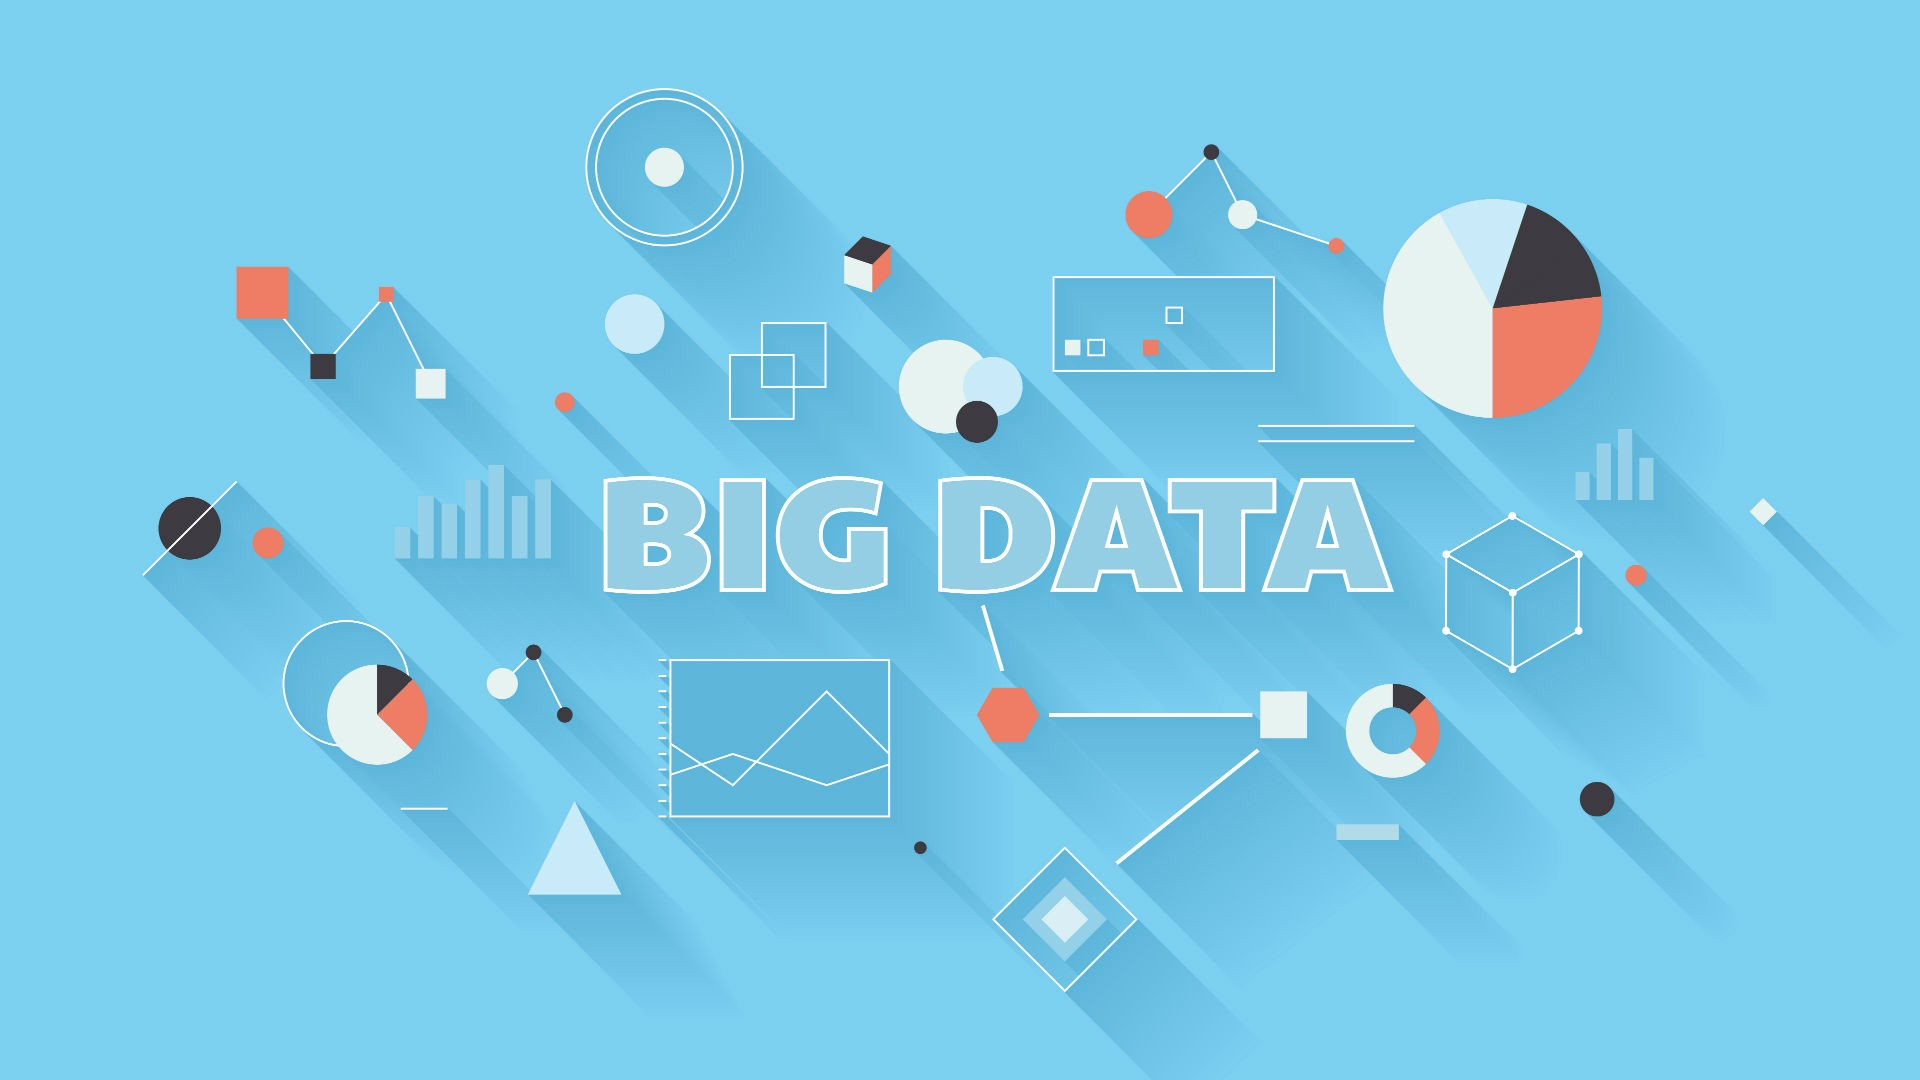 Big Data Technology and Service Global Market Is Expected To Grow With A Cagr Of 25.4% In Forecast Period 2019-2024